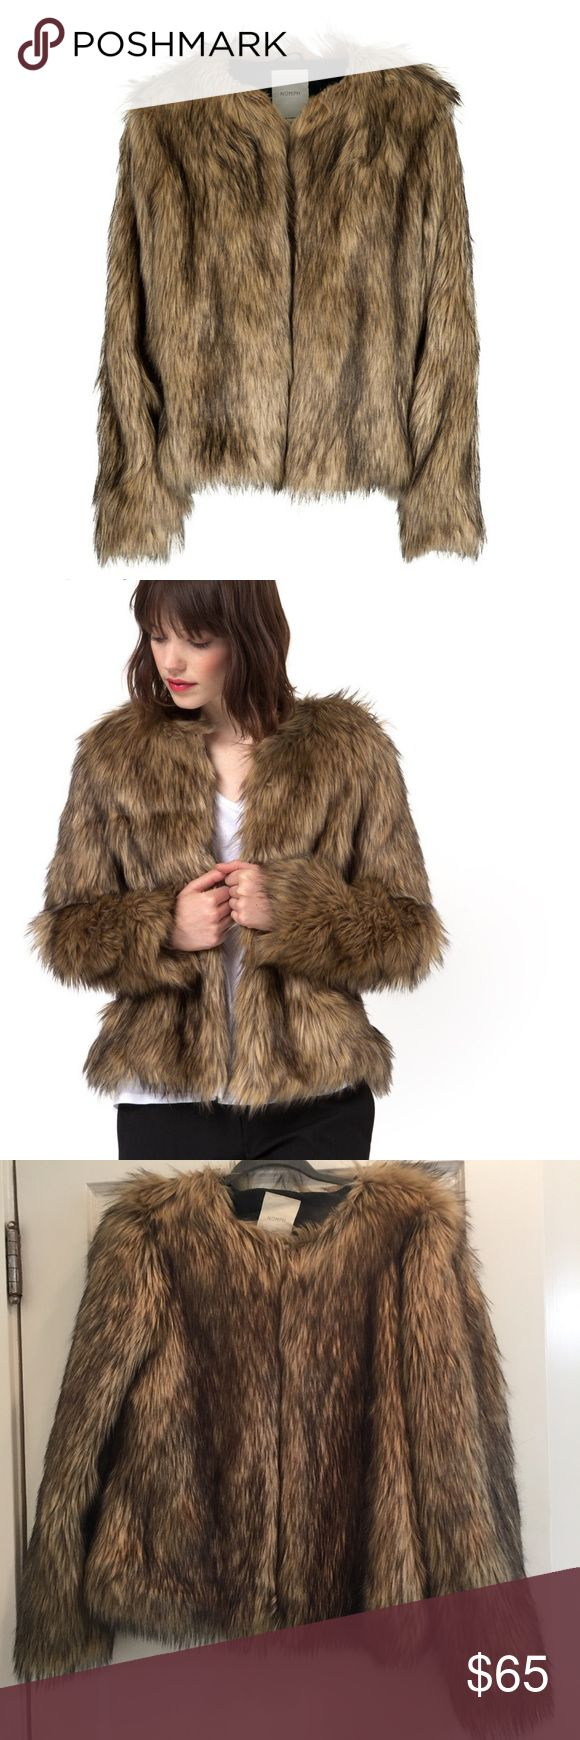 NÜMPH Fur Coat Brown faux fur coat with hook clasp Urban Outfitters Jackets & Coats